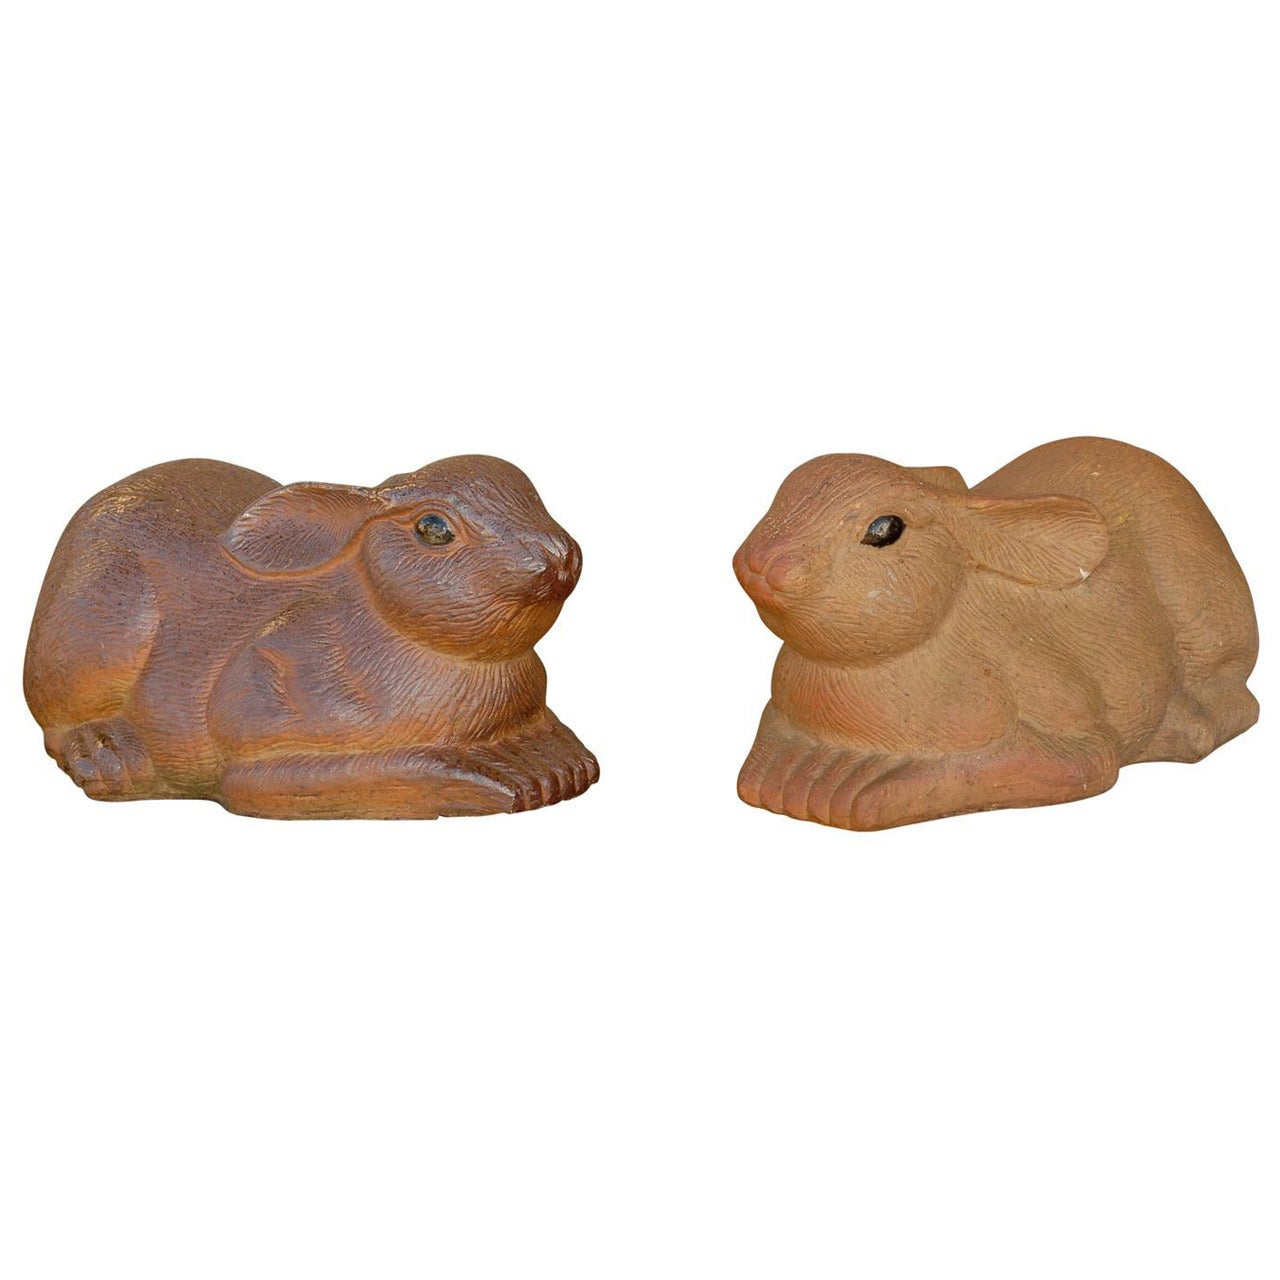 Pair of Large Painted Terracotta Rabbit Sculptures, 20th Century, English